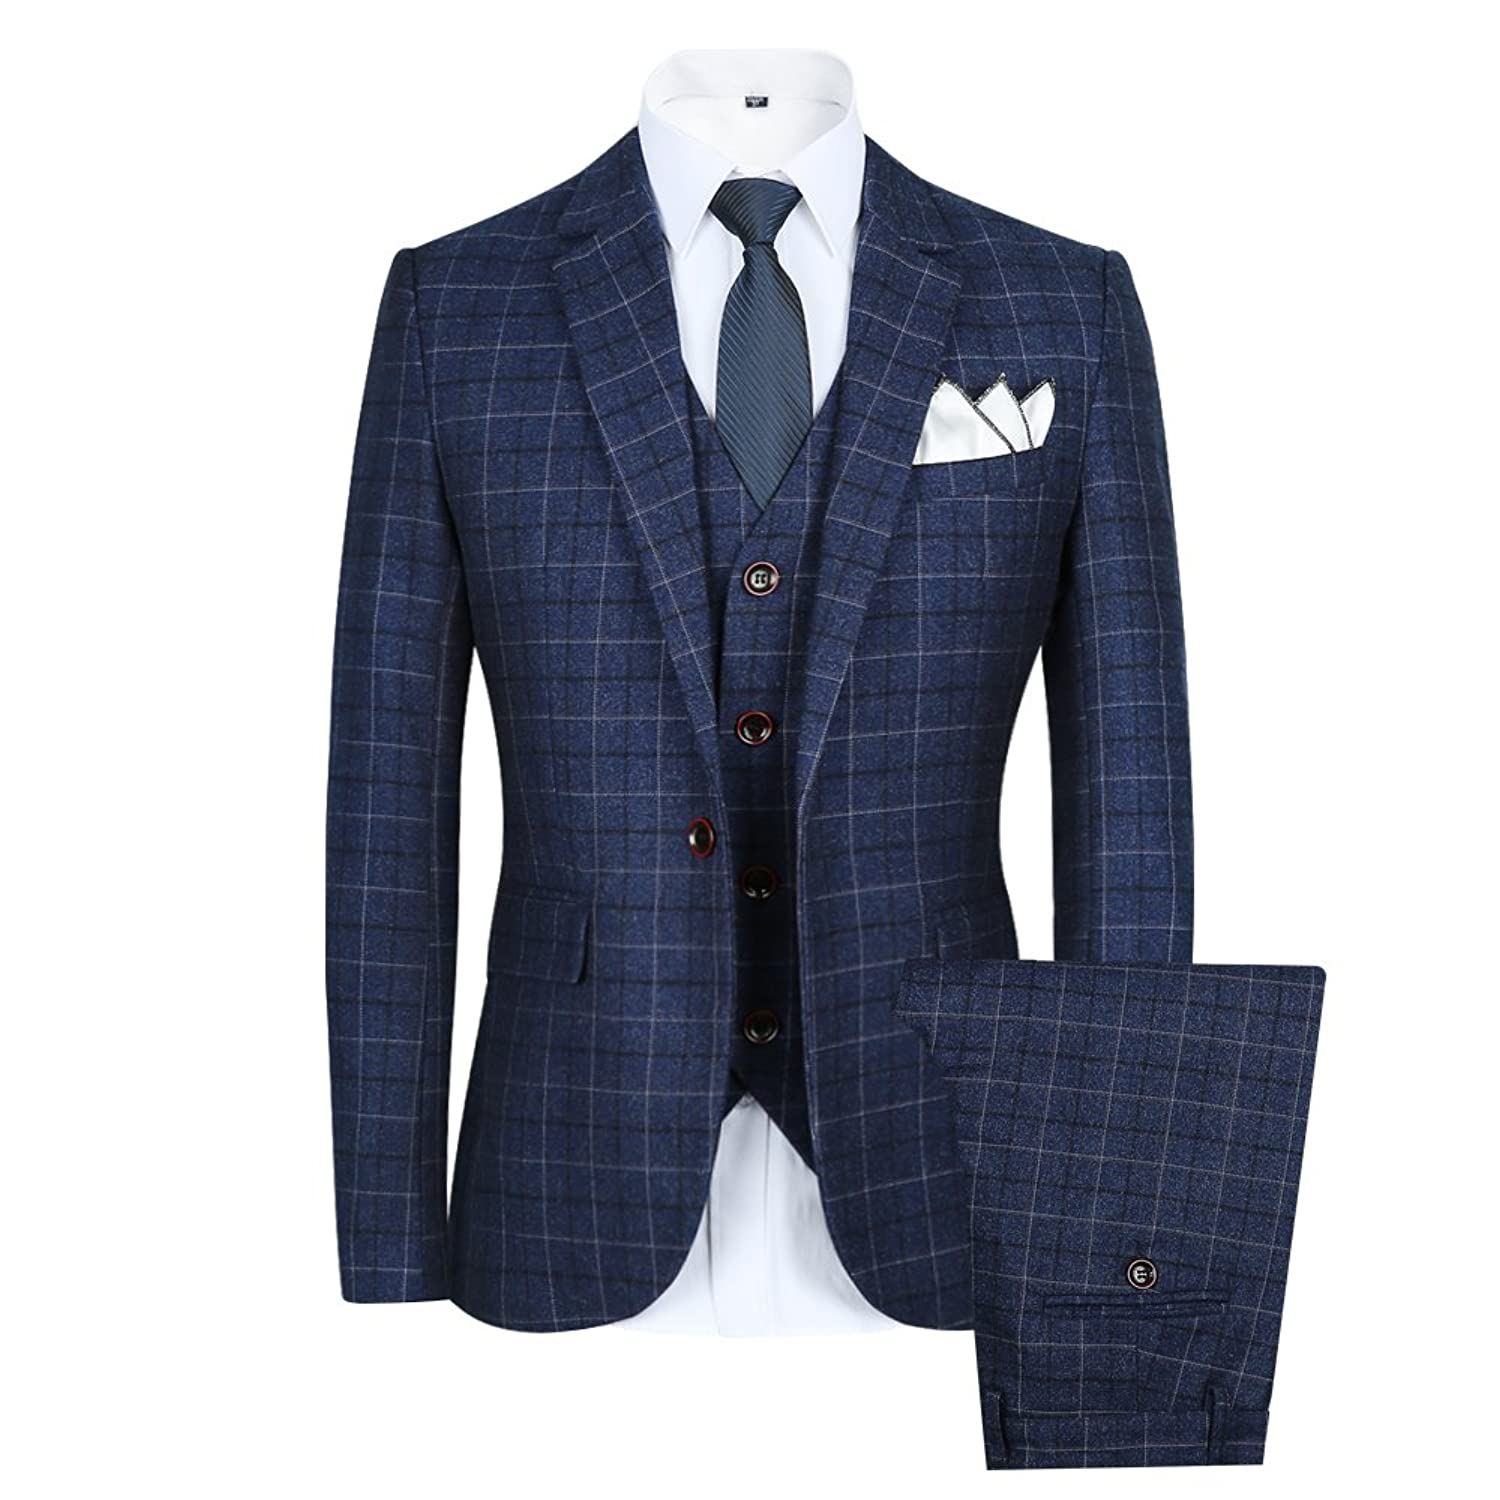 Men's Vintage Style Suits, Classic Suits CCXO Men's Slim Plaid Modern Fit One Button 3-Piece Suit Blazer Dress Suit Jacket Tux Vest & Trousers $79.99 AT vintagedancer.com